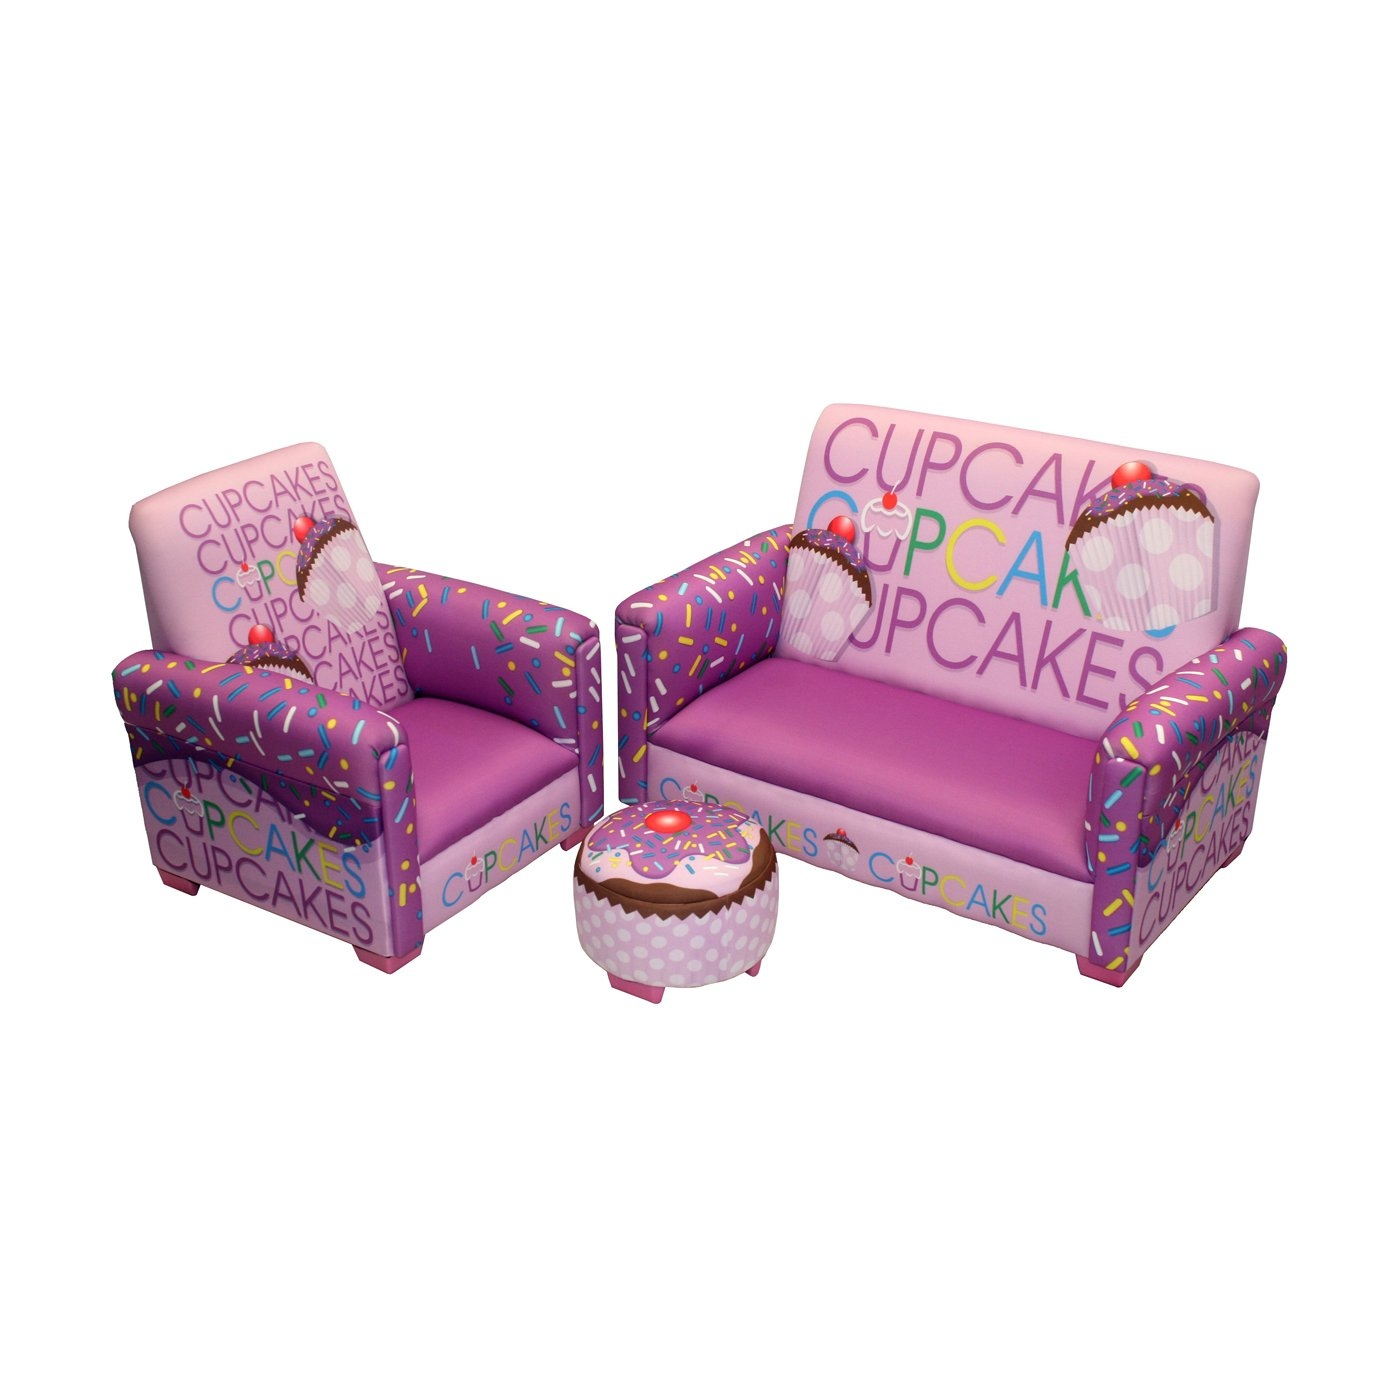 64 Ba Sofa Chair Nickelodeon Dora The Explorer Toddler Sofa And In Kids Sofa Chair And Ottoman Set Zebra (Photo 2 of 15)